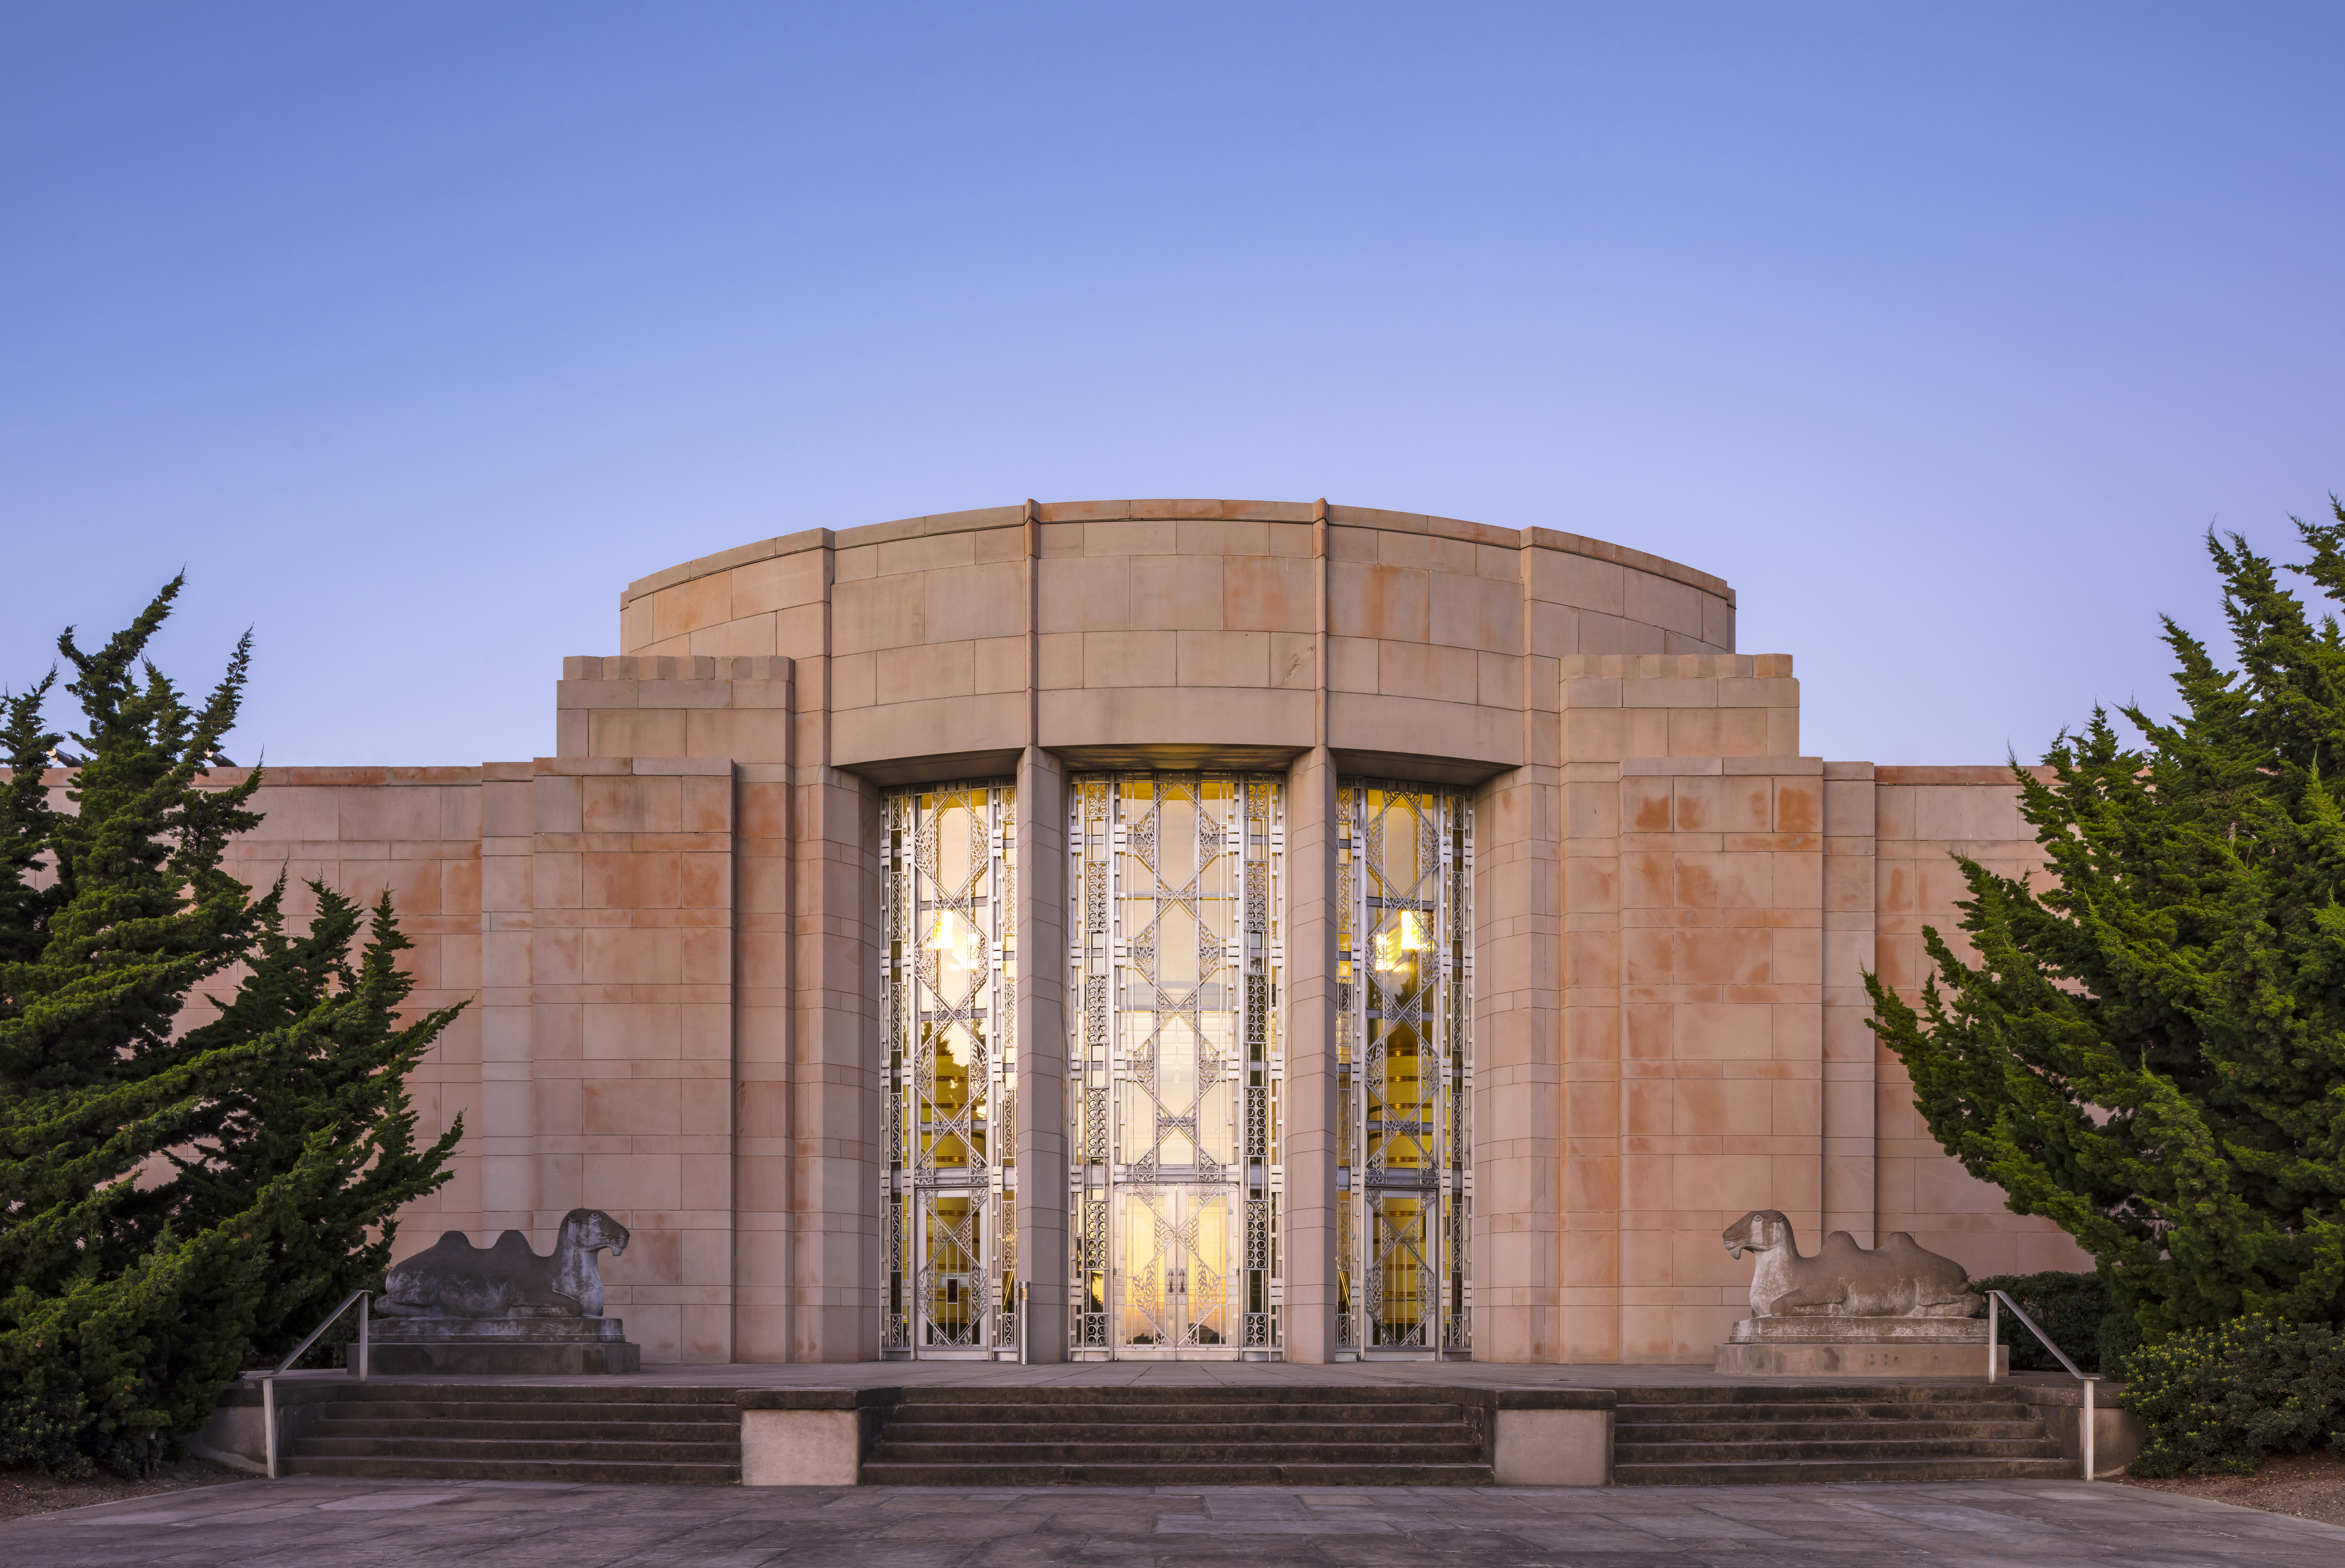 On a clear day at dusk, an Art Deco building with a large central bay with three vertical, ornate window. There's a wide staircase up to the front with camels on either side. The facade is clean and tidy, and light shines through the windows' amber glass.